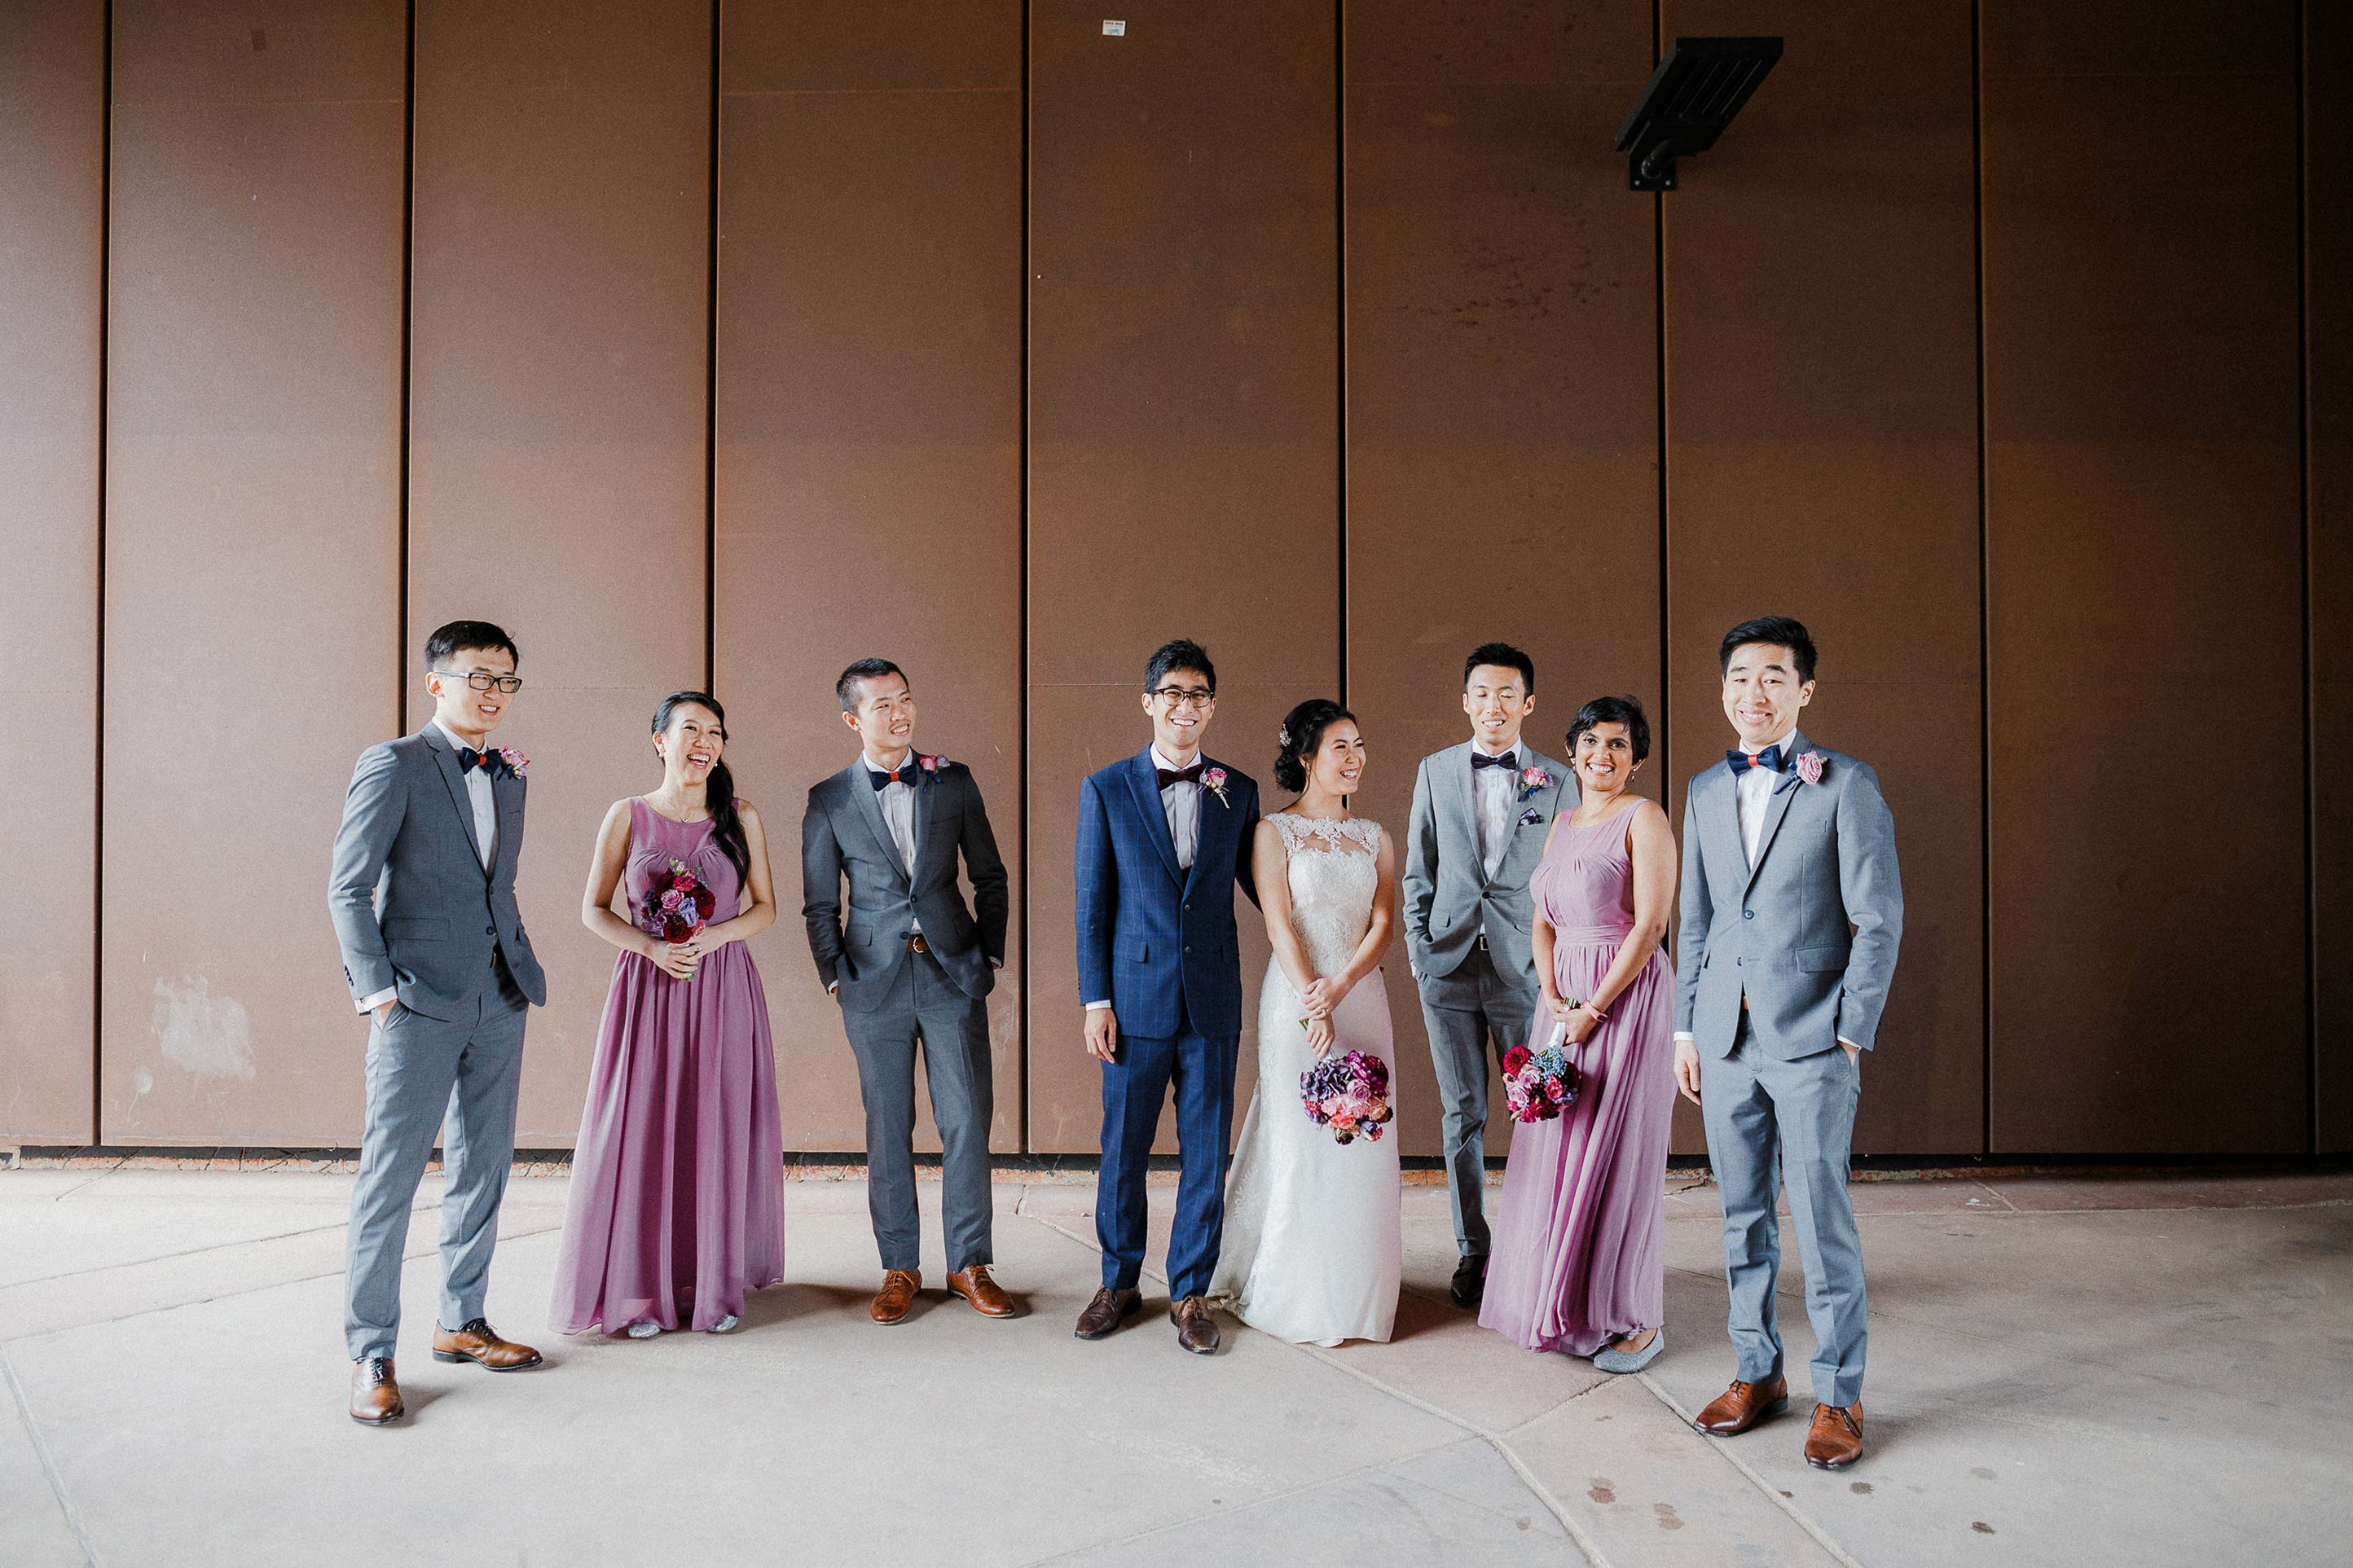 Melbourne-Richmond-Glasshaus-Wedding-bridal-party-portrait